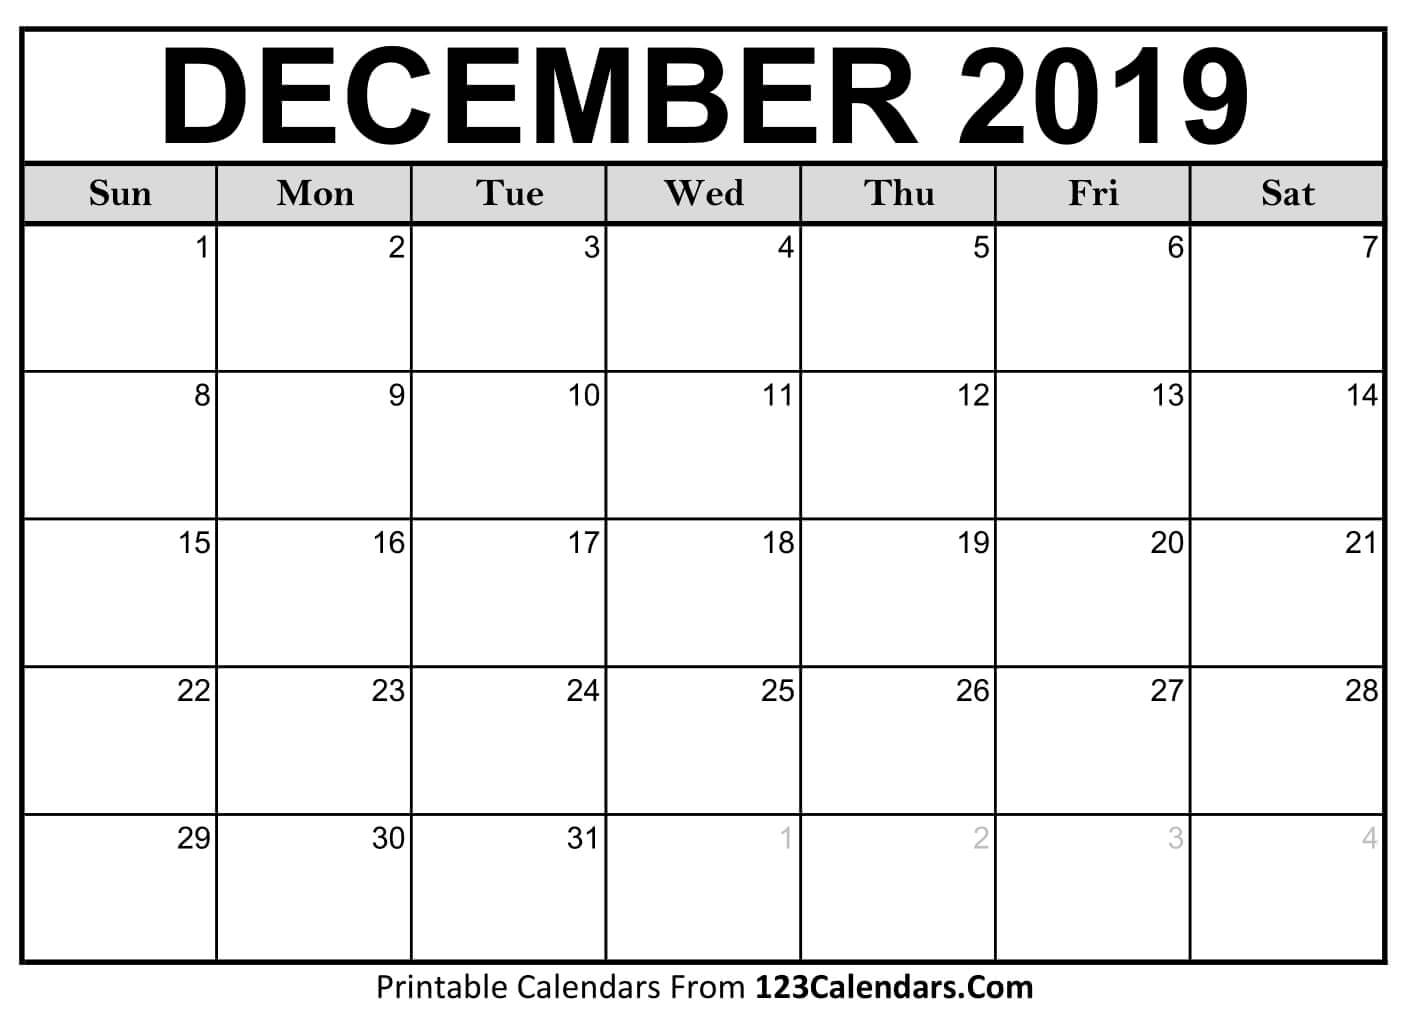 Printable Calendar for December 2019 Templates